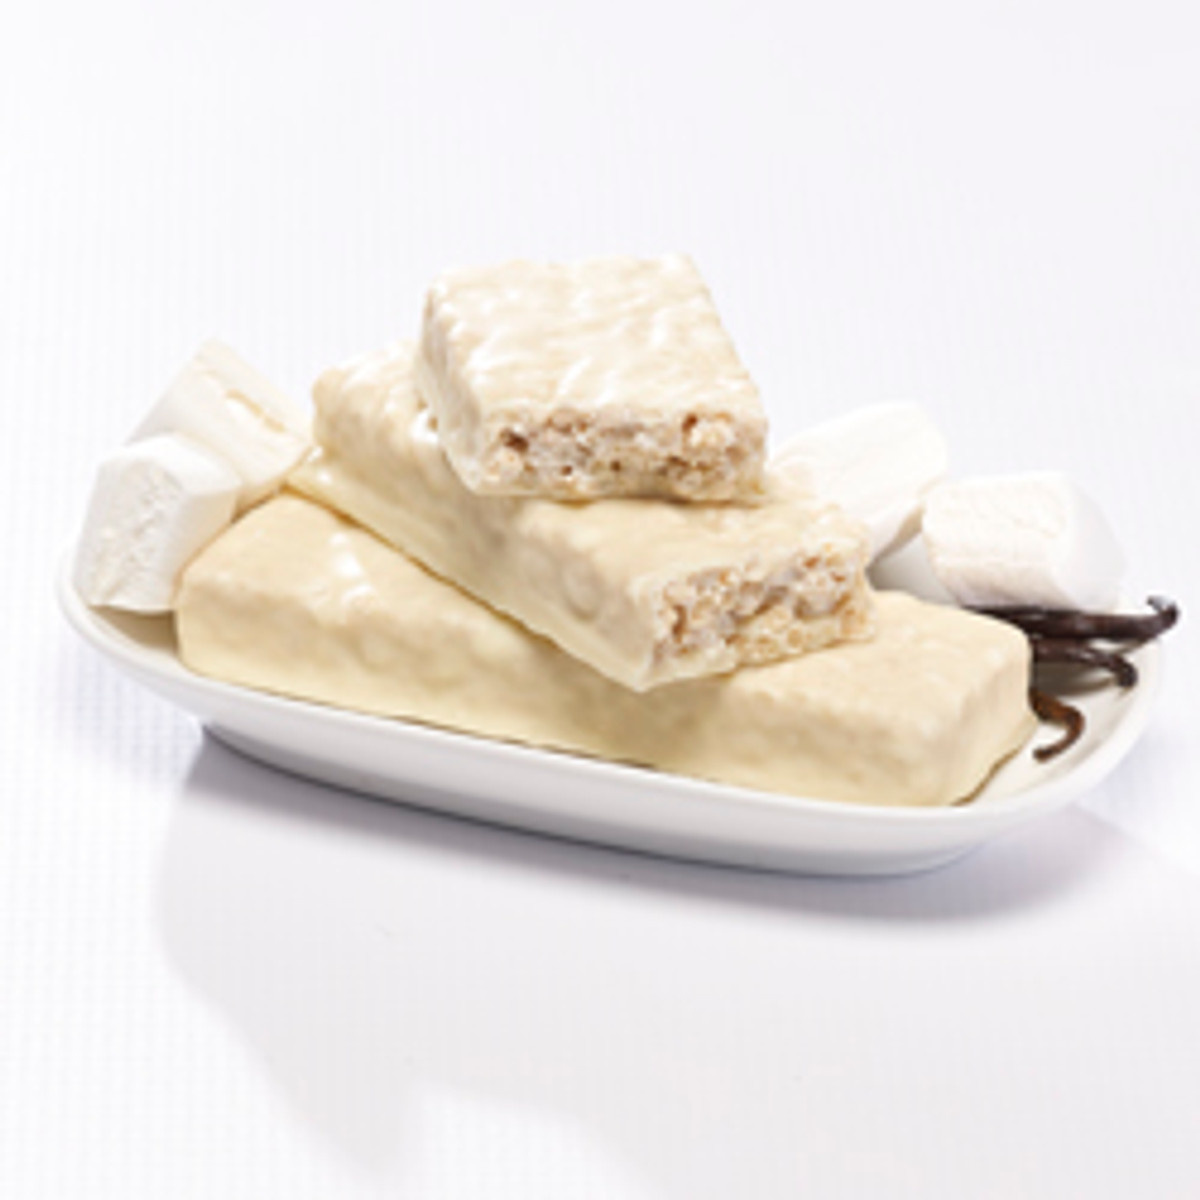 Maintenance Fluffy Vanilla Crisp High Protein Bar *Buy One, Get One Free* BEST BY 2/28/19